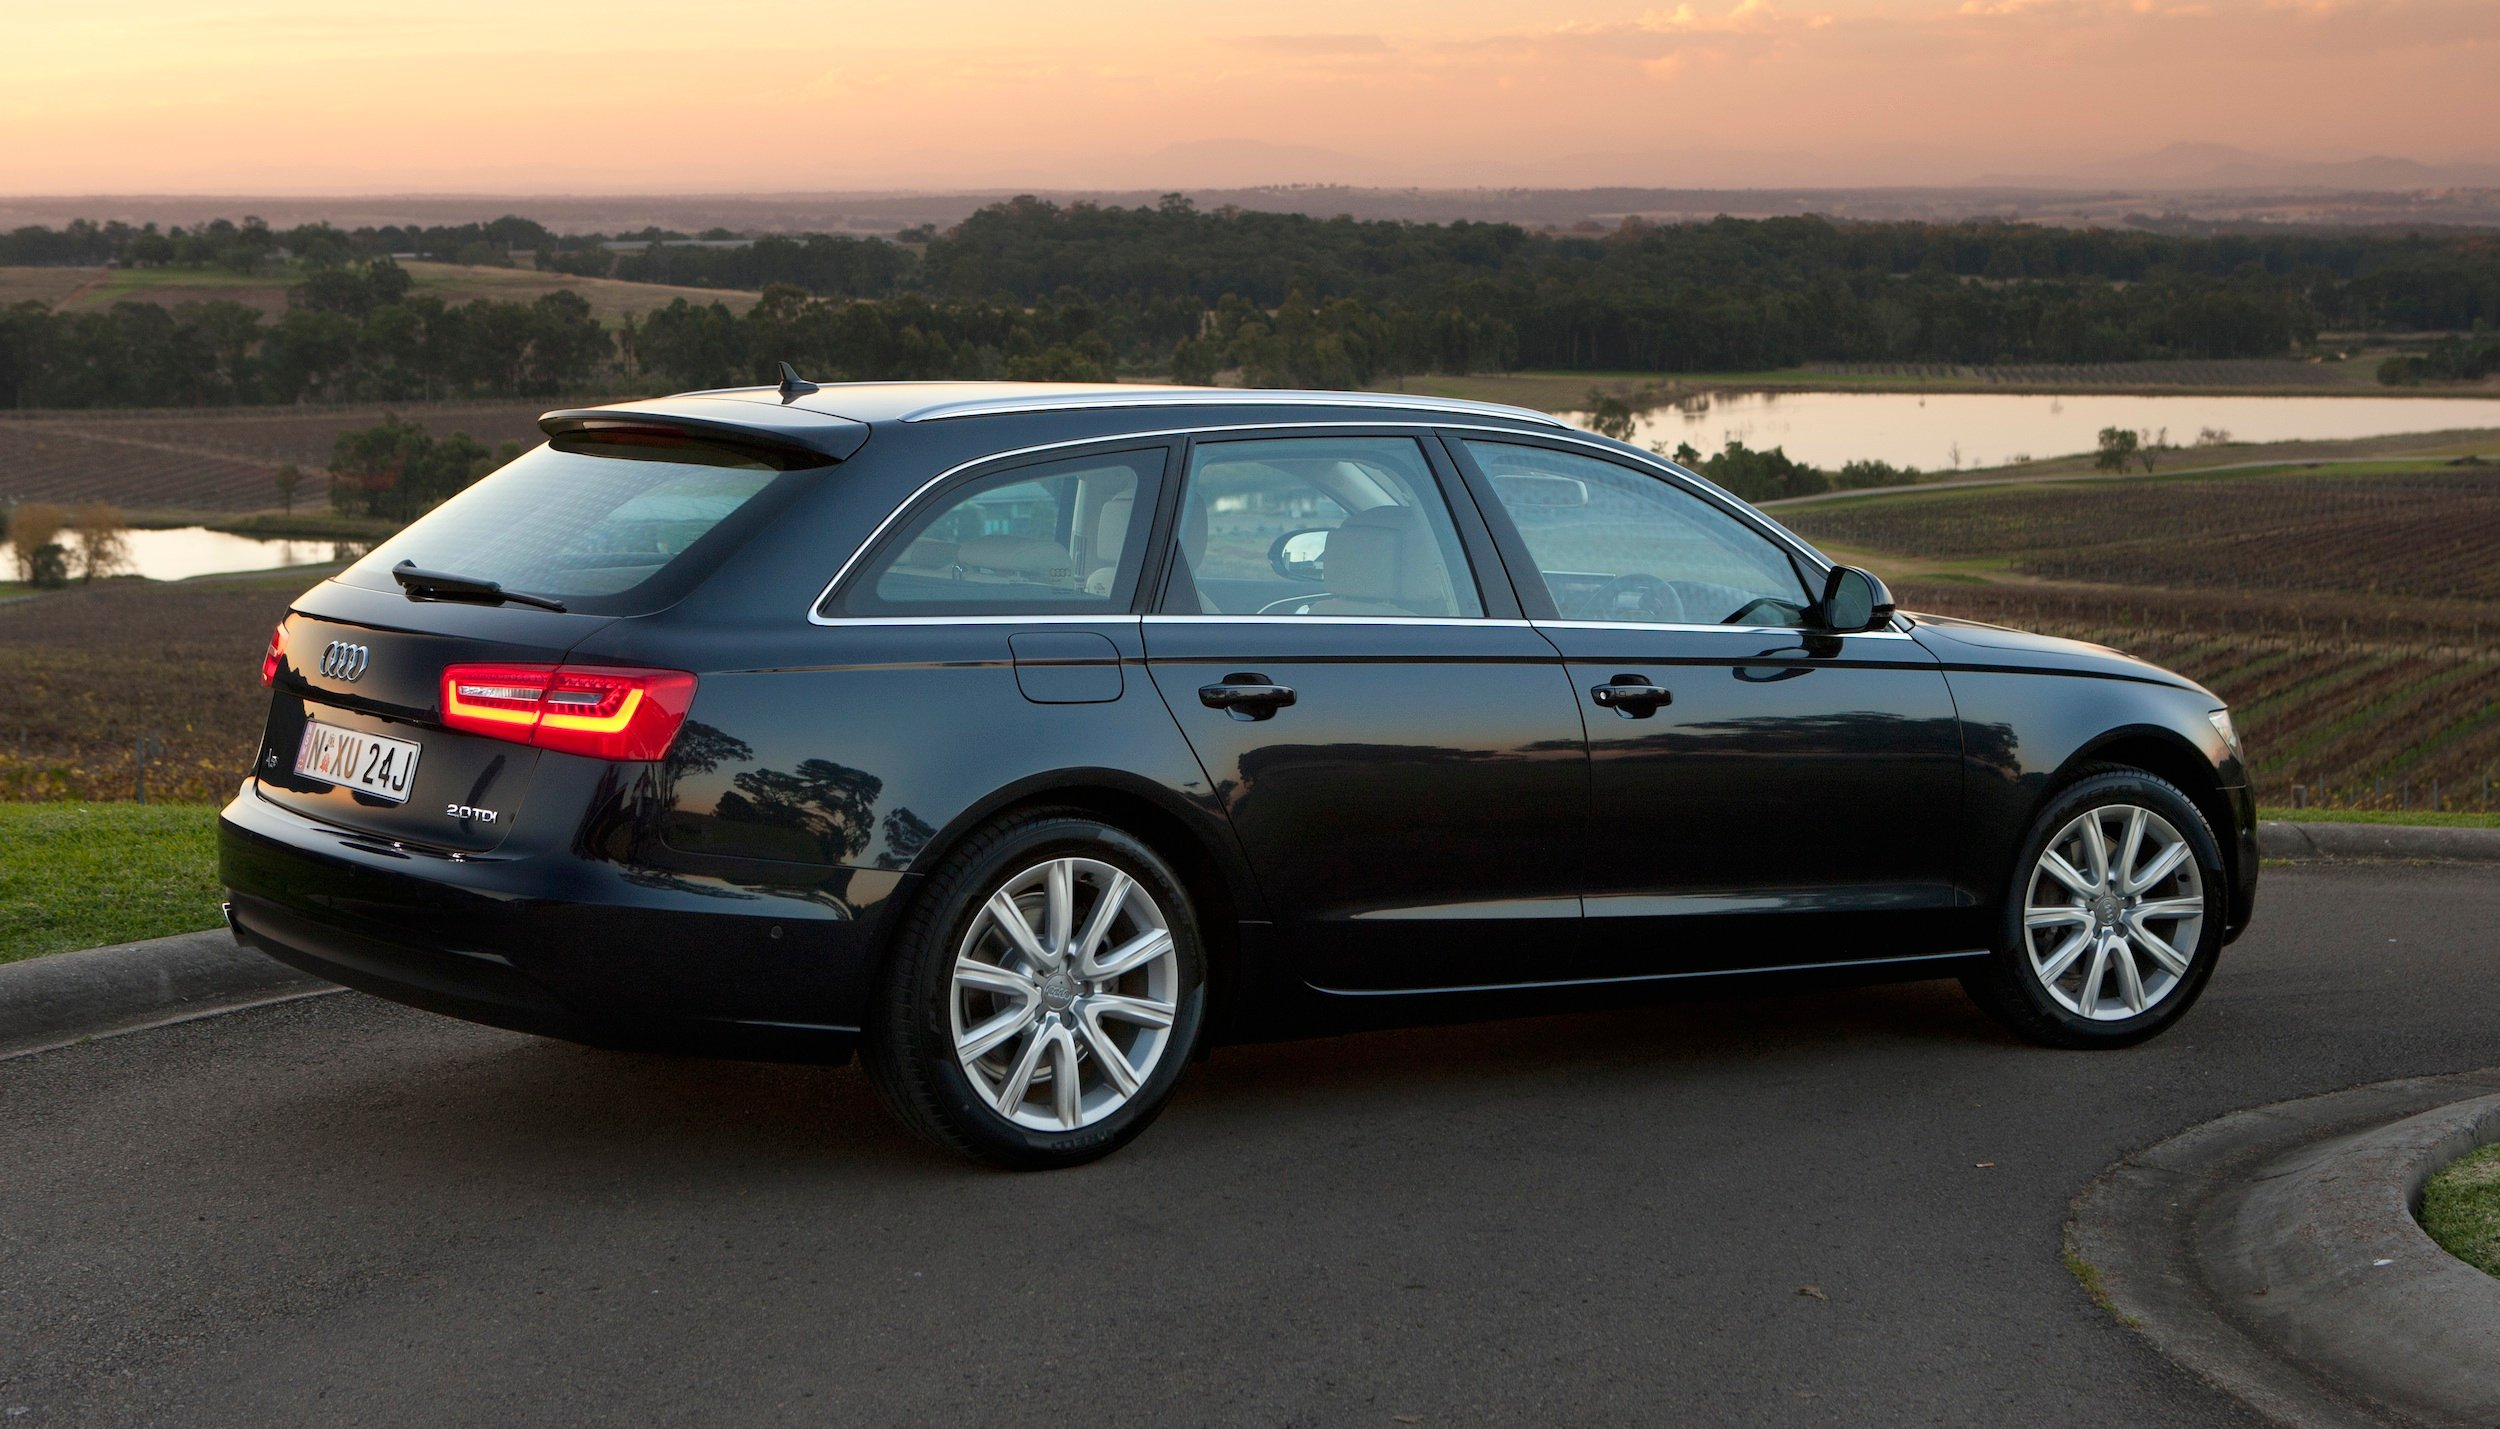 Audi A6 Review | CarAdvice